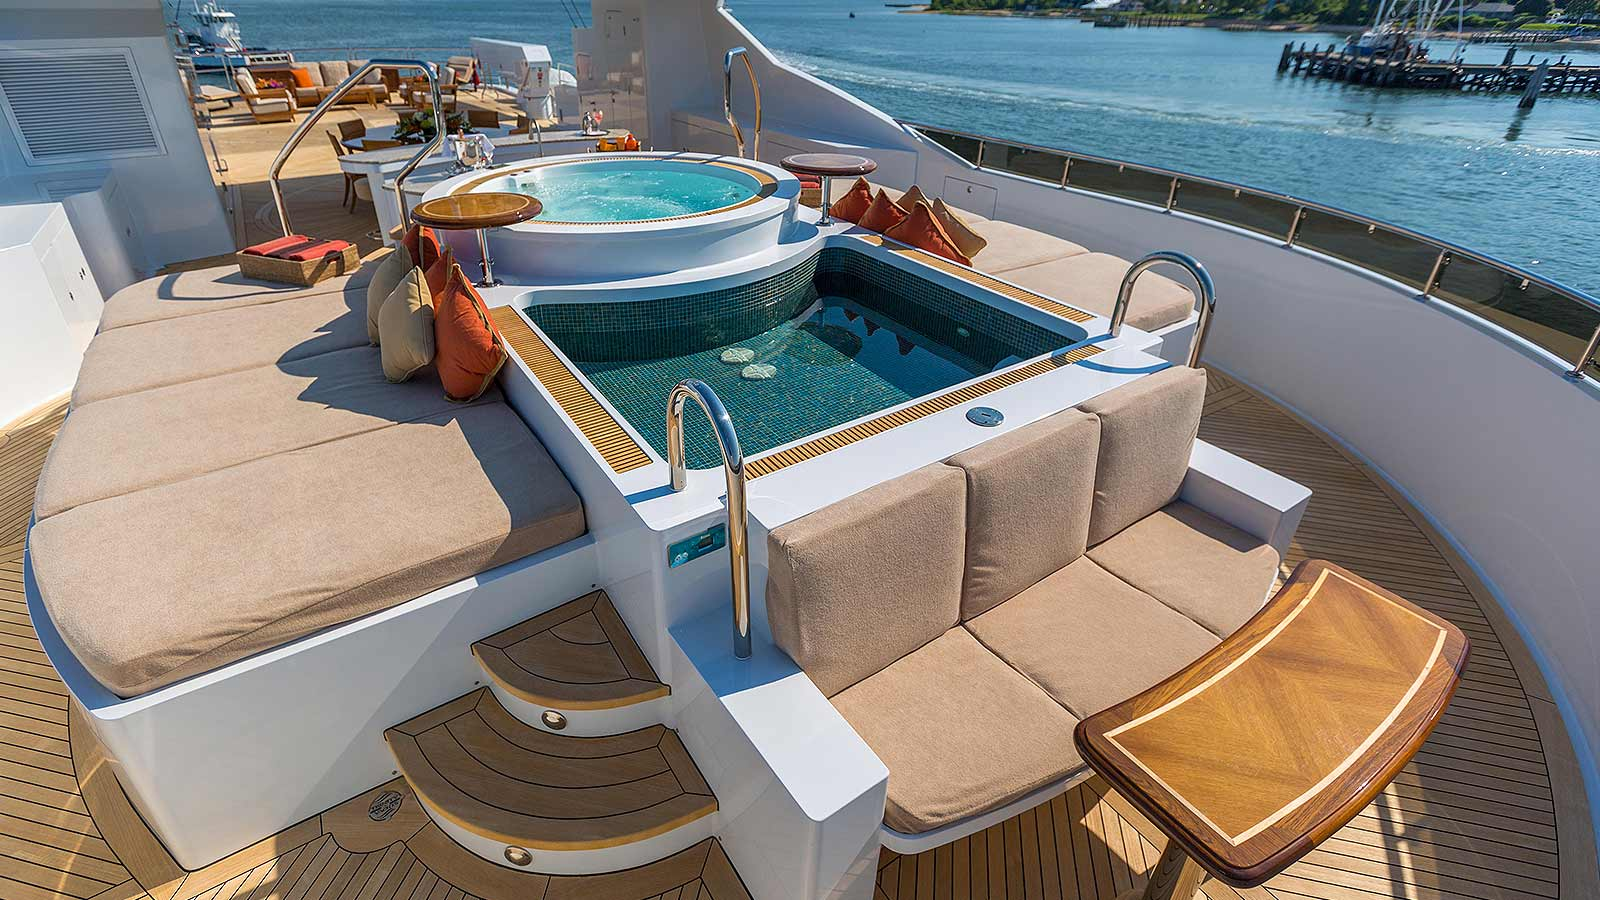 Sun deck with Jacuzzi and pool